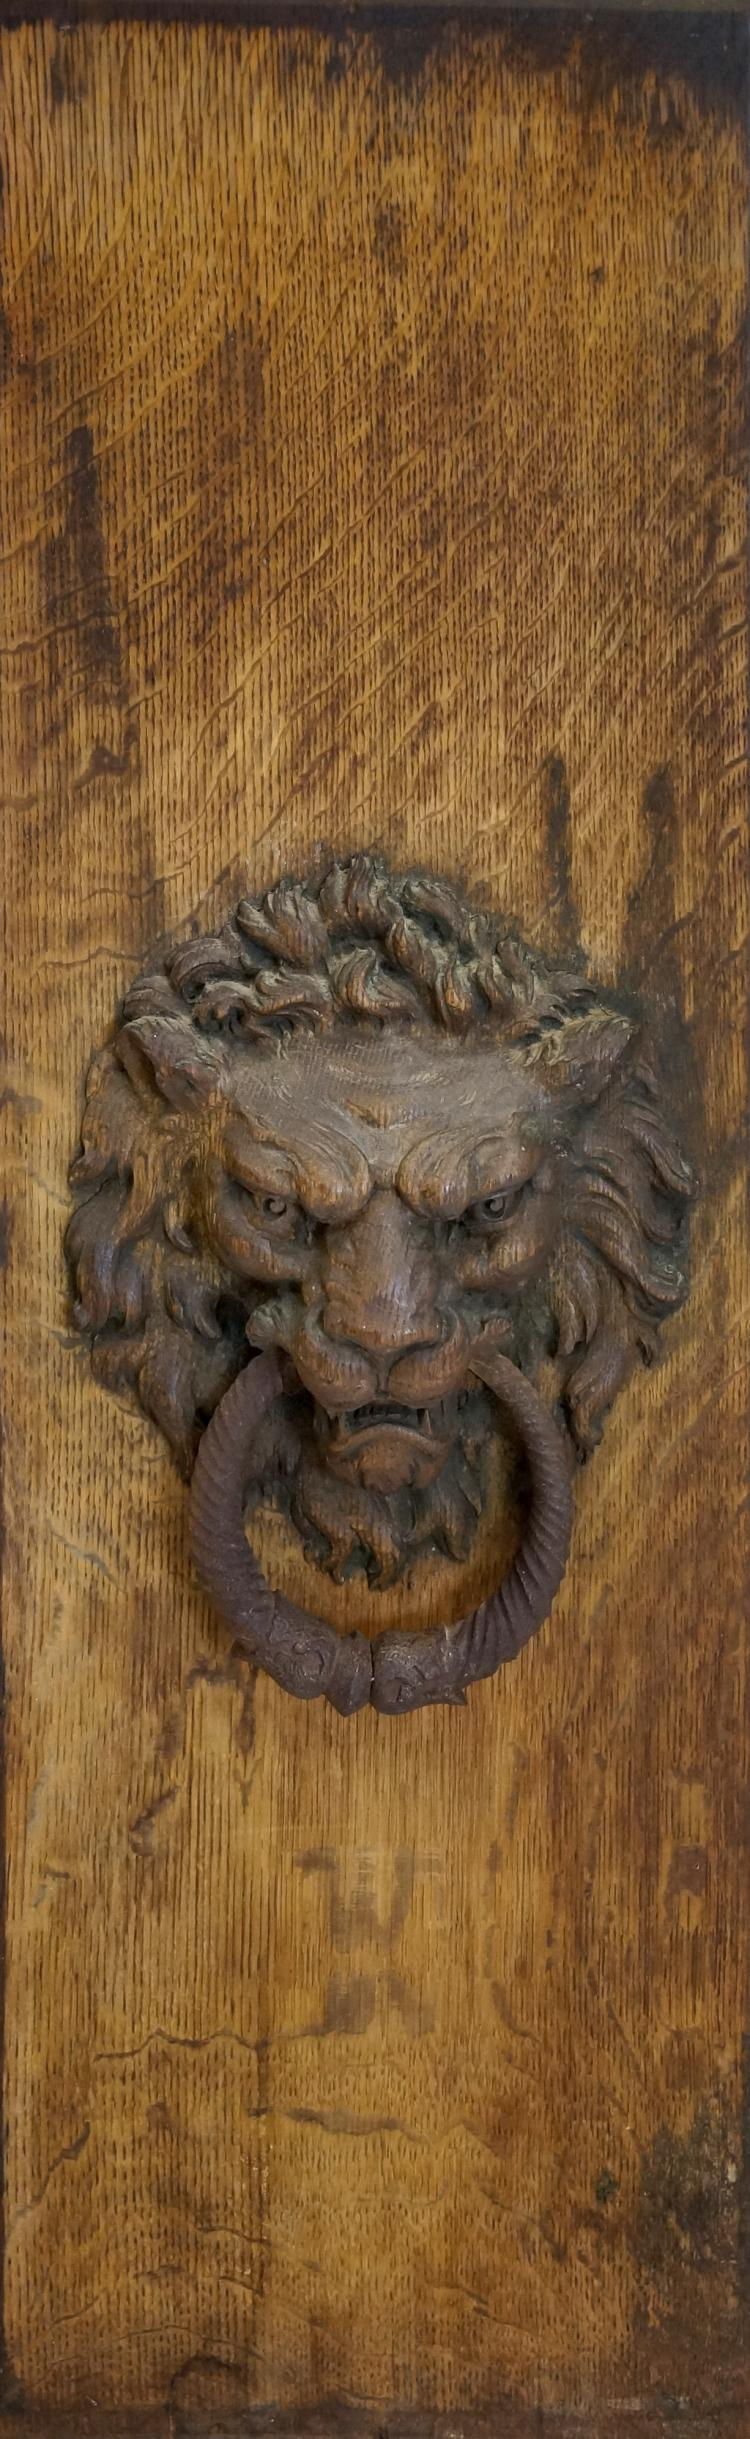 ANTIQUE CARVED OAK PANEL WITH LION HEAD AND WROUGHT IRON RING. PANEL/OVERALL 39 1/2 X 12 3/4